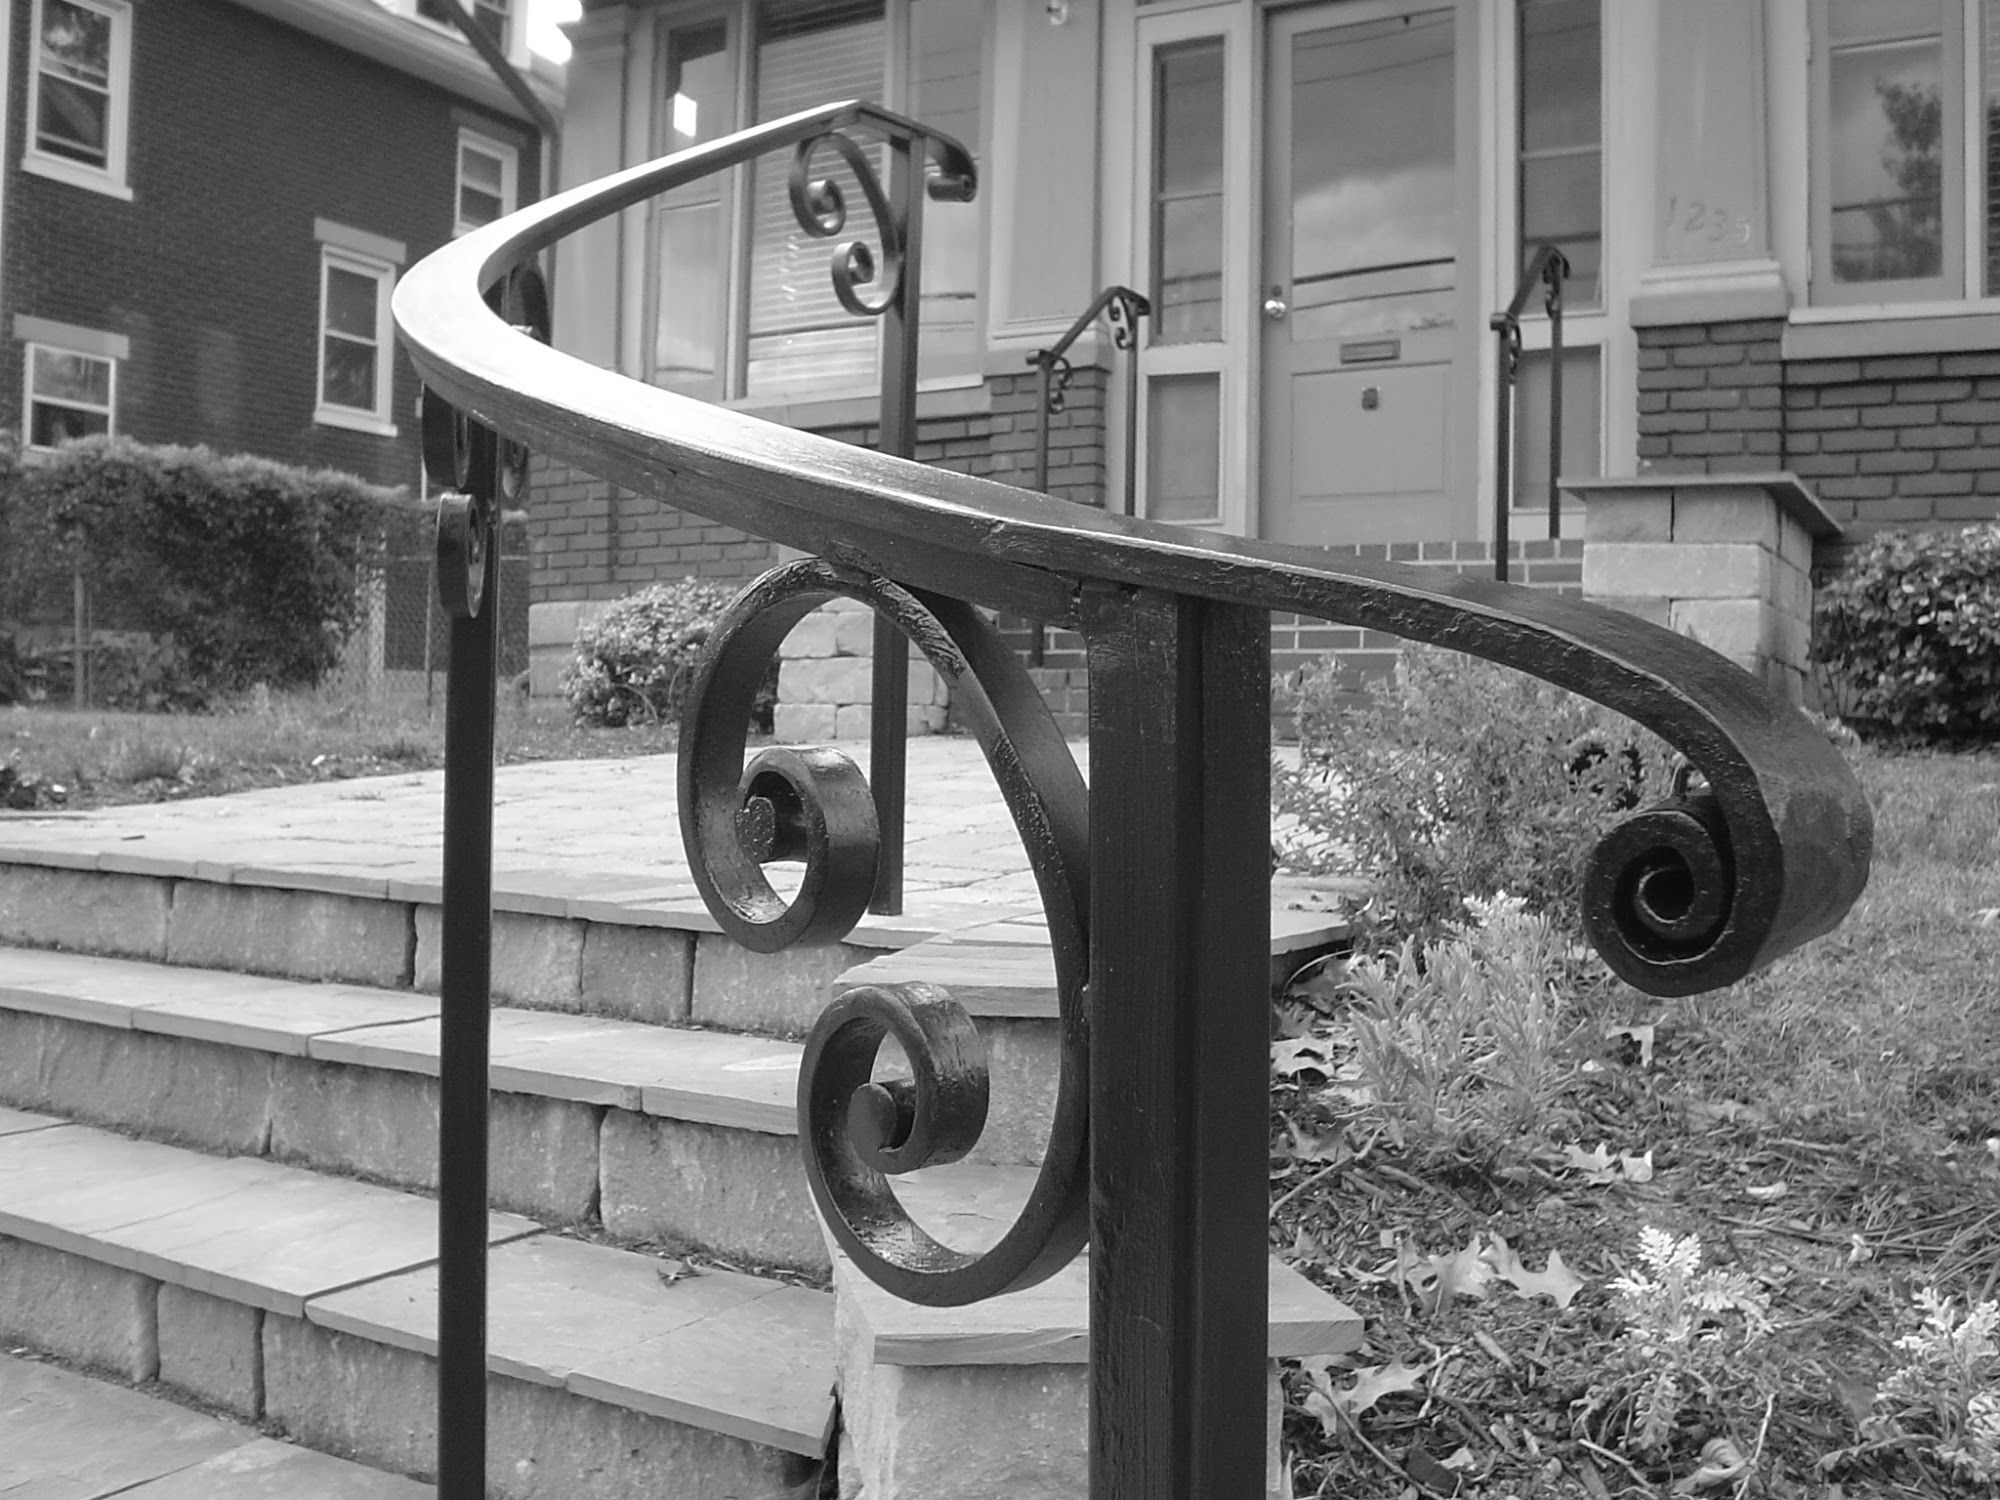 Curved Wrought Iron Stair Railings And Exterior Wrought Iron Railings